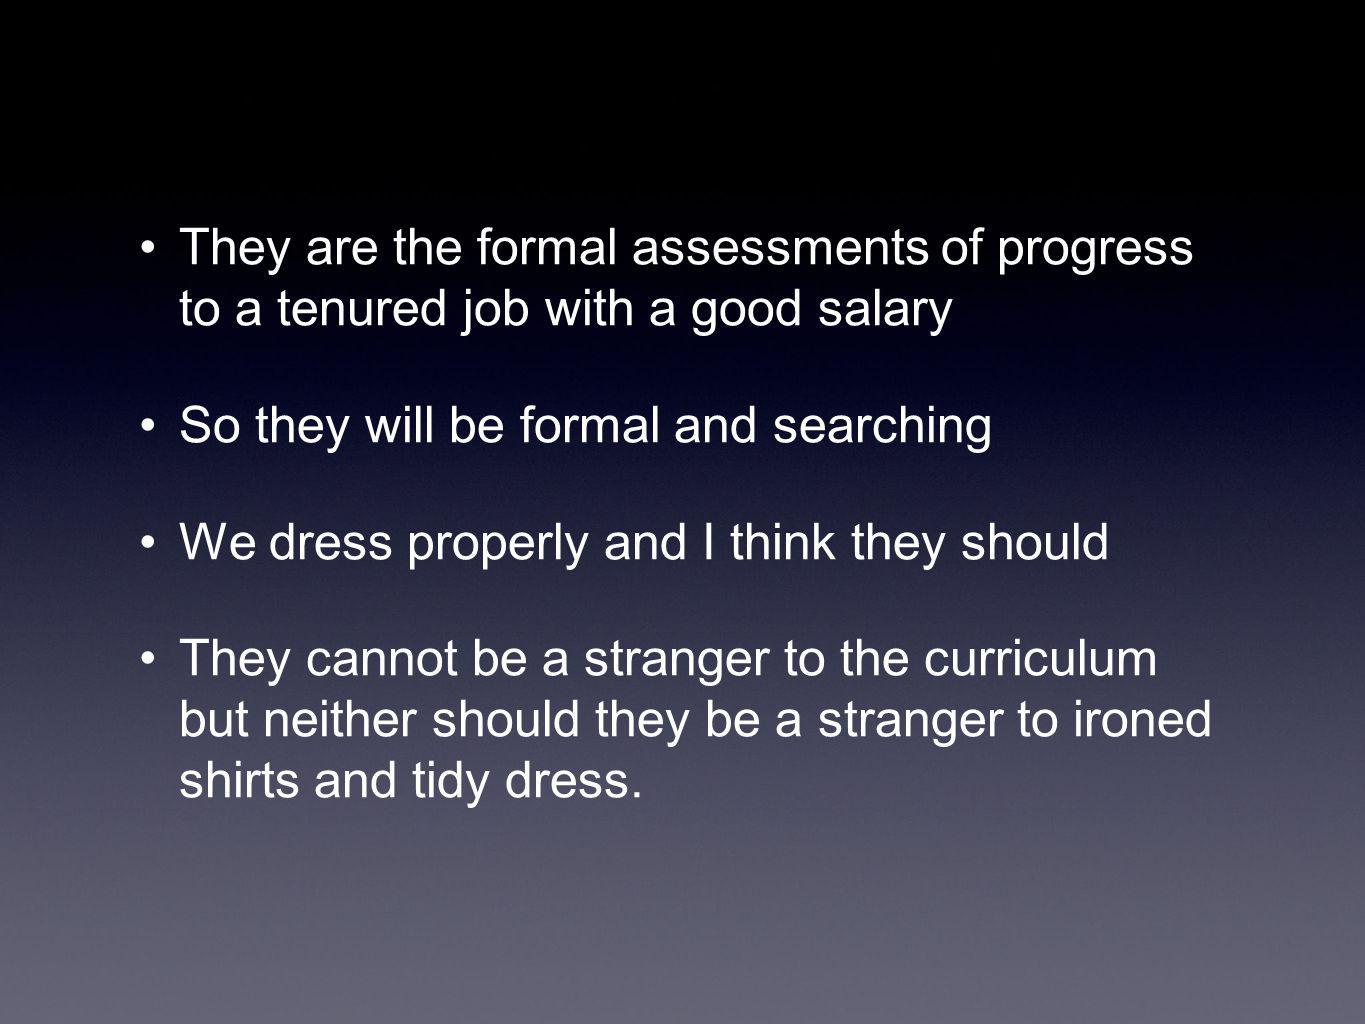 They are the formal assessments of progress to a tenured job with a good salary So they will be formal and searching We dress properly and I think they should They cannot be a stranger to the curriculum but neither should they be a stranger to ironed shirts and tidy dress.